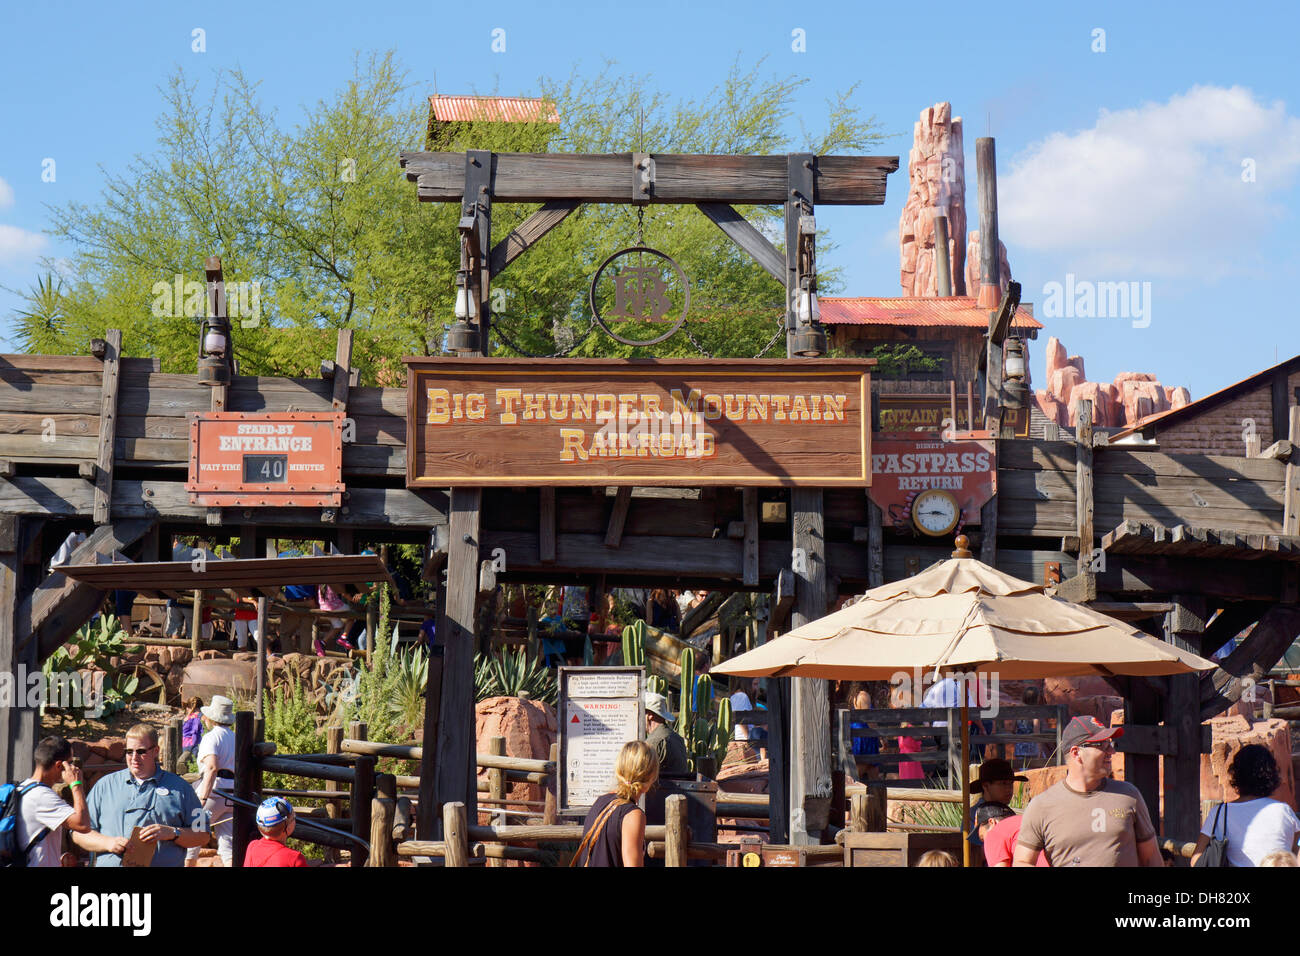 Big Thunder Mountain Railroad Rides Roller Coaster In